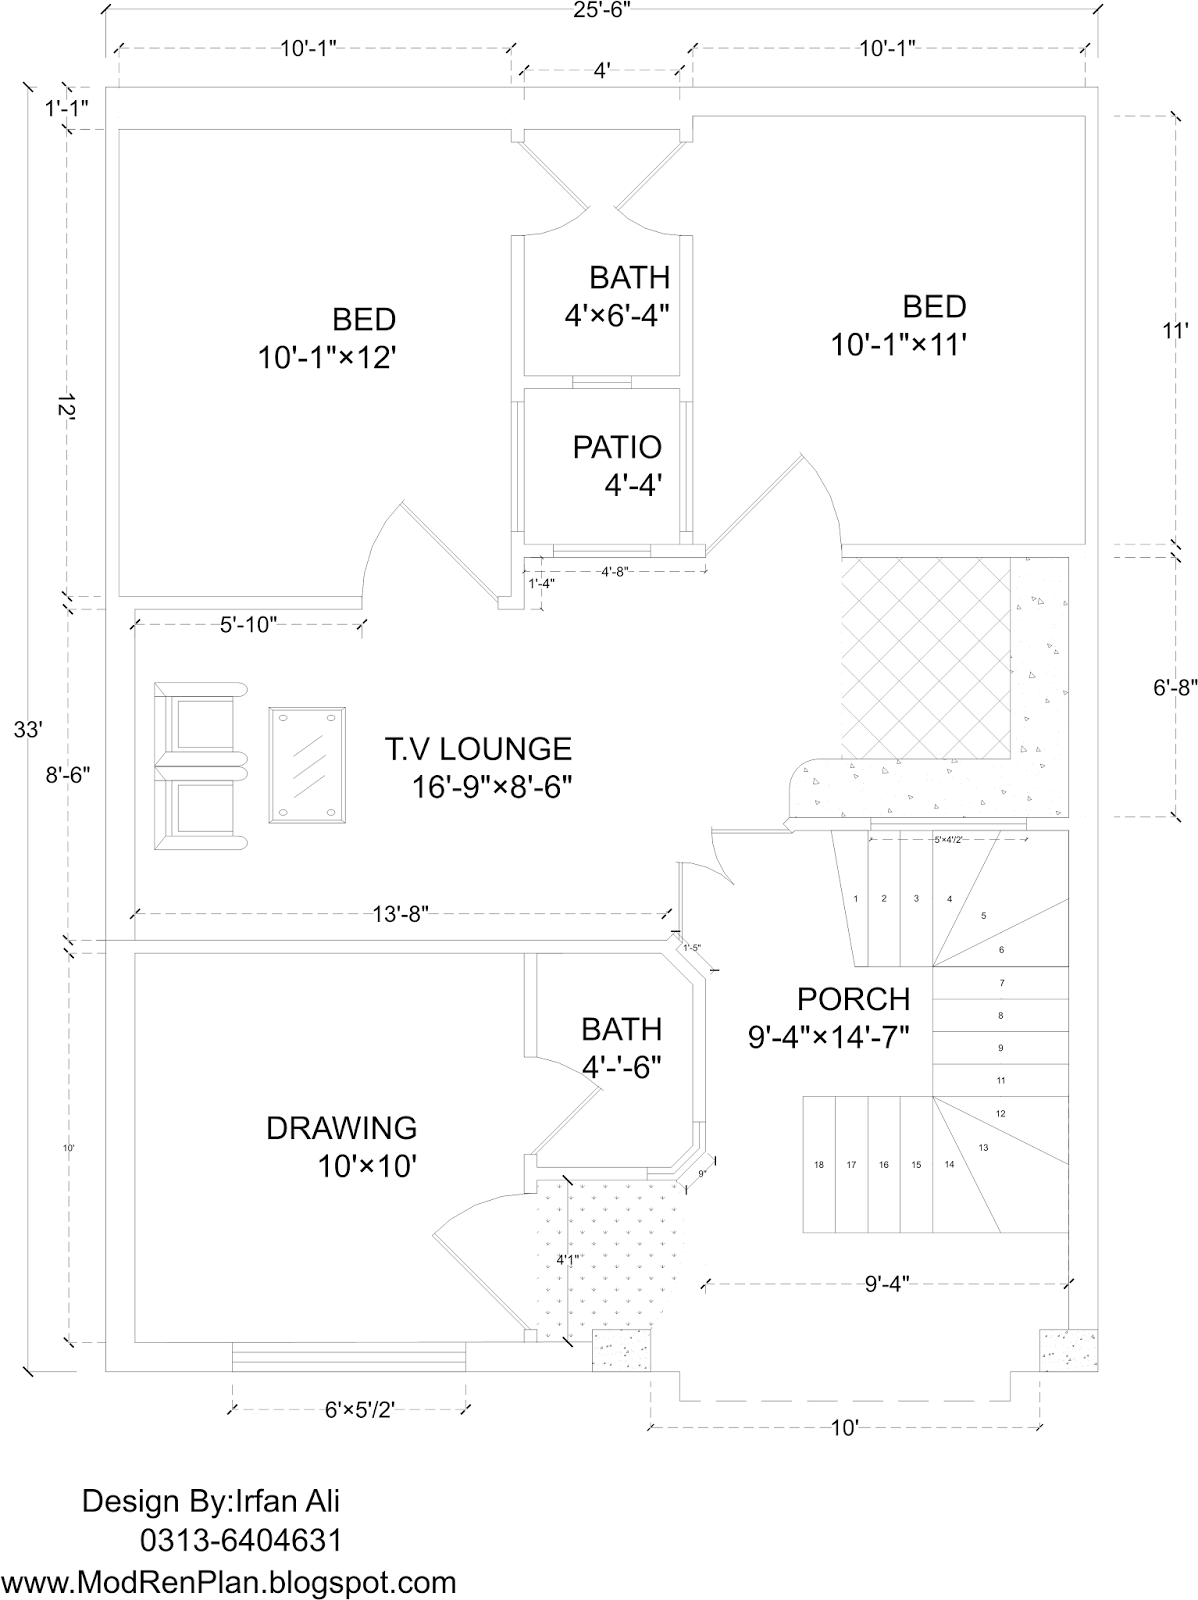 5 marla house plan and map with detail 25x33 house plan 5 marla house plan 3d